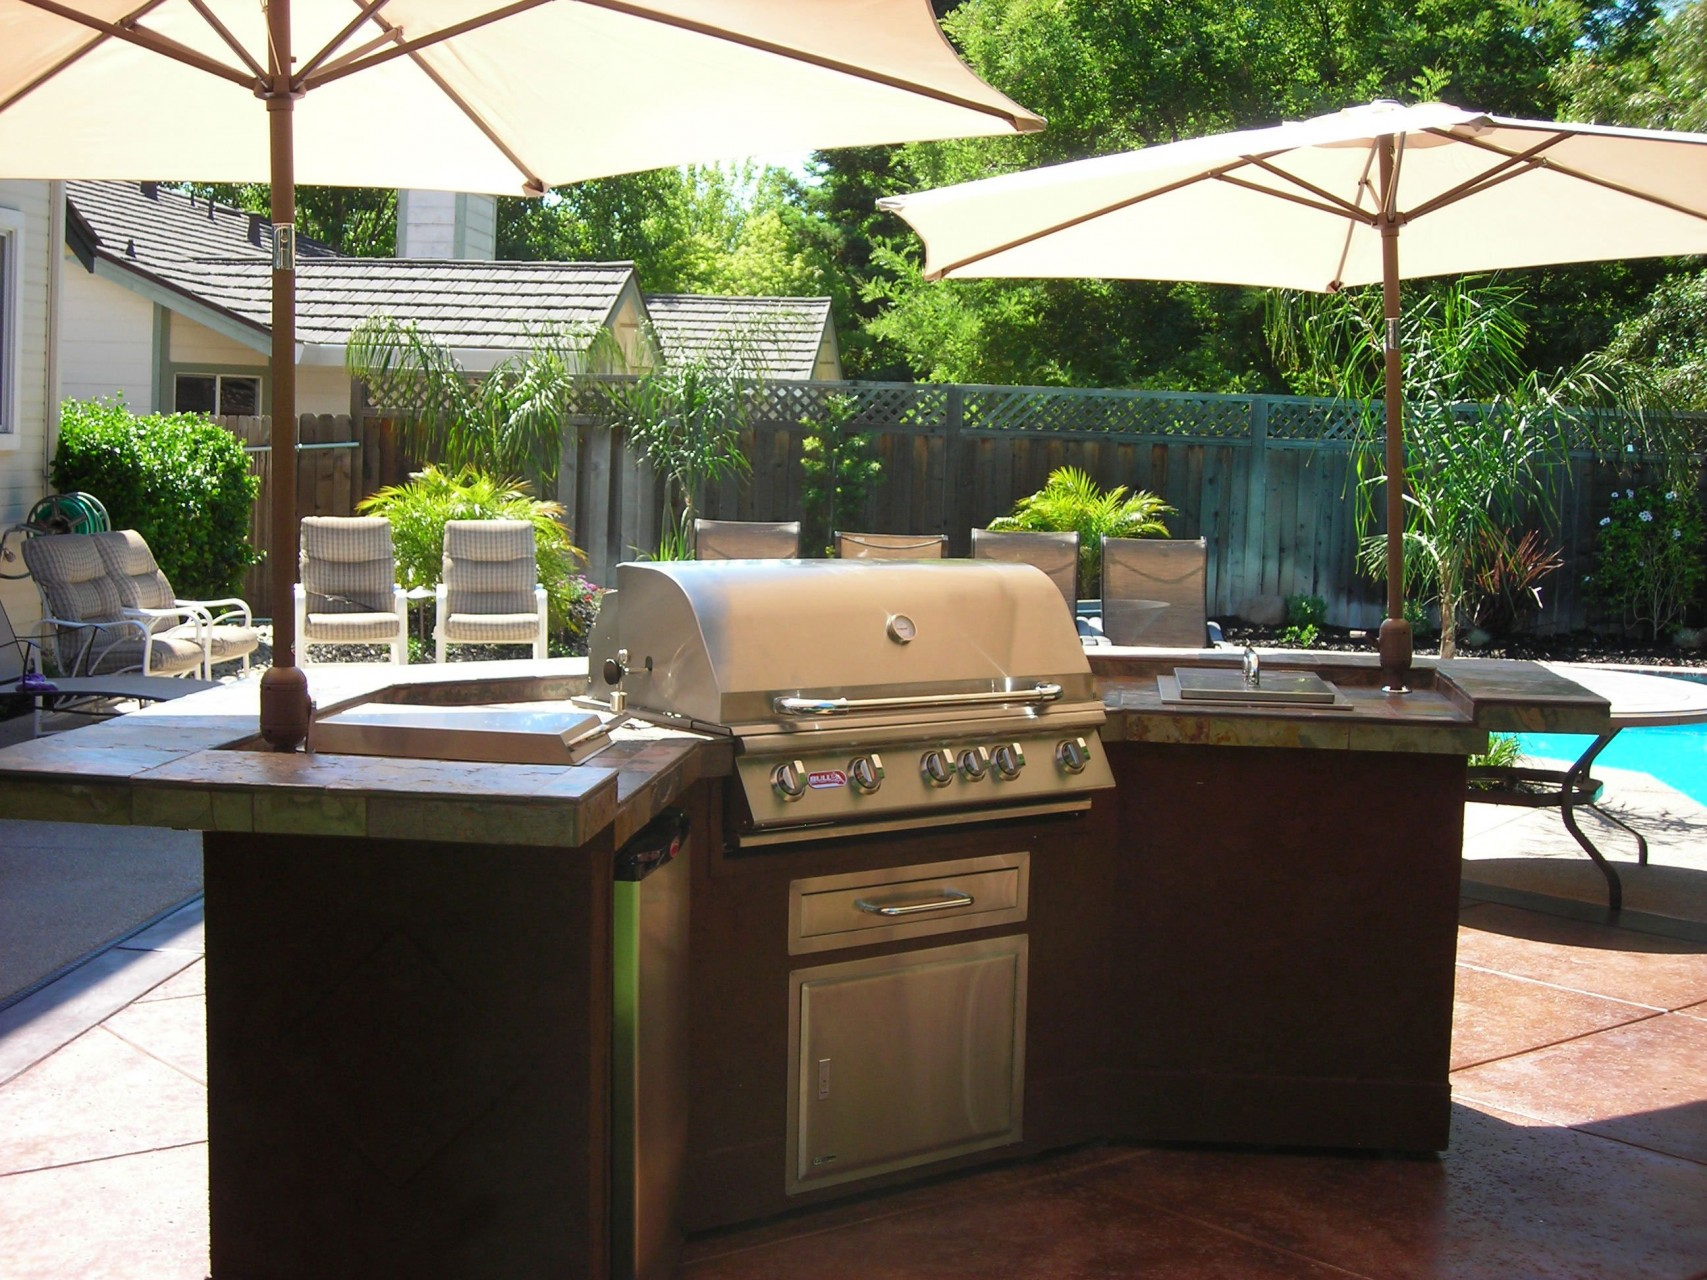 Outdoor kitchen island modular outdoor kitchens kits for Backyard barbecues outdoor kitchen